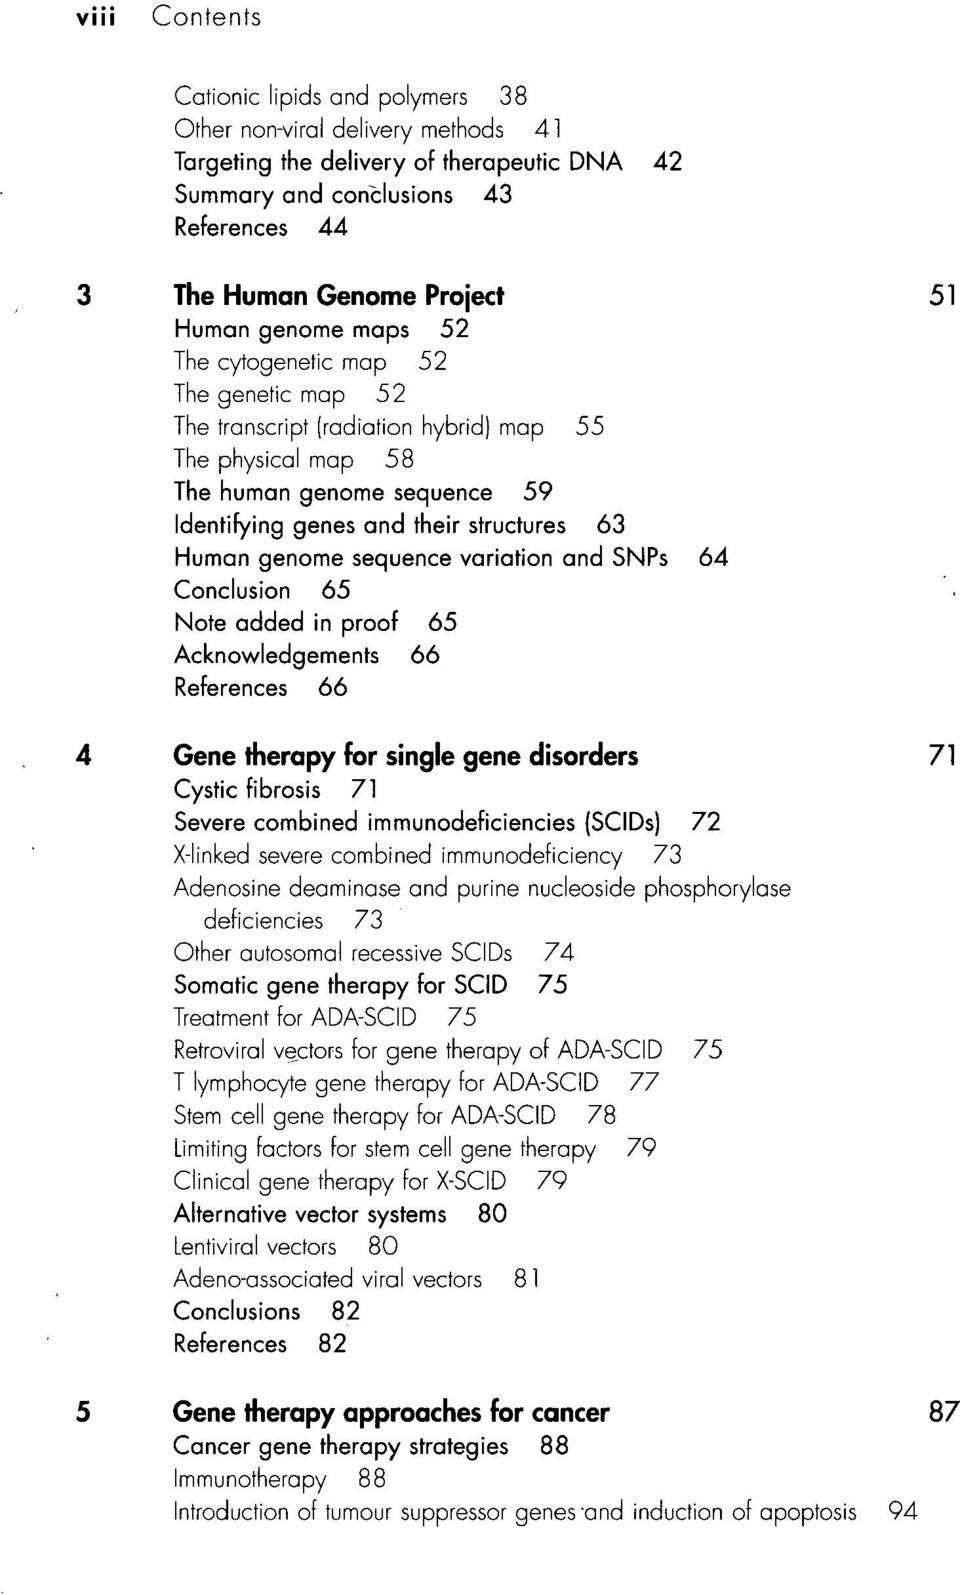 Human genome sequence variation and SNPs 64 Conclusion 65 Note added in proof 65 Acknowledgements 66 References 66 Gene therapy for single gene disorders 71 Cystic fibrosis 71 Severe combined